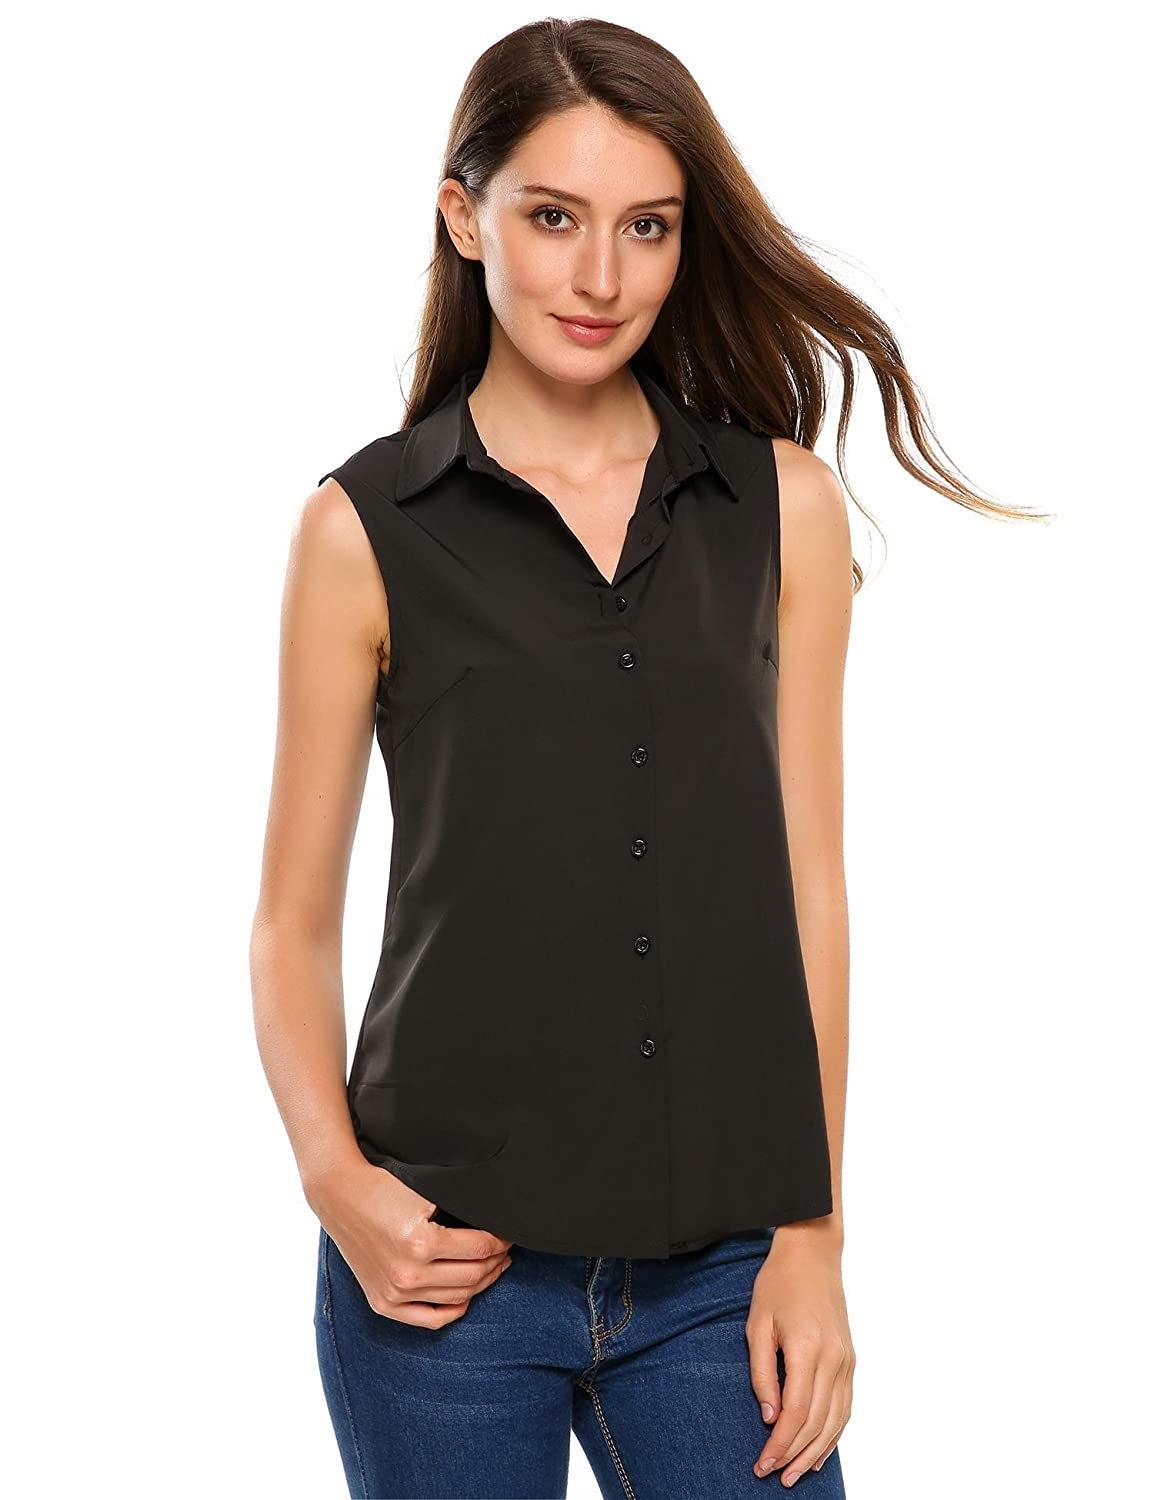 1cbe7ce5 Zeagoo Women's Sleeveless Button Down Shirt Tops Solid Casual Loose Blouse  at Amazon Women's Clothing store: